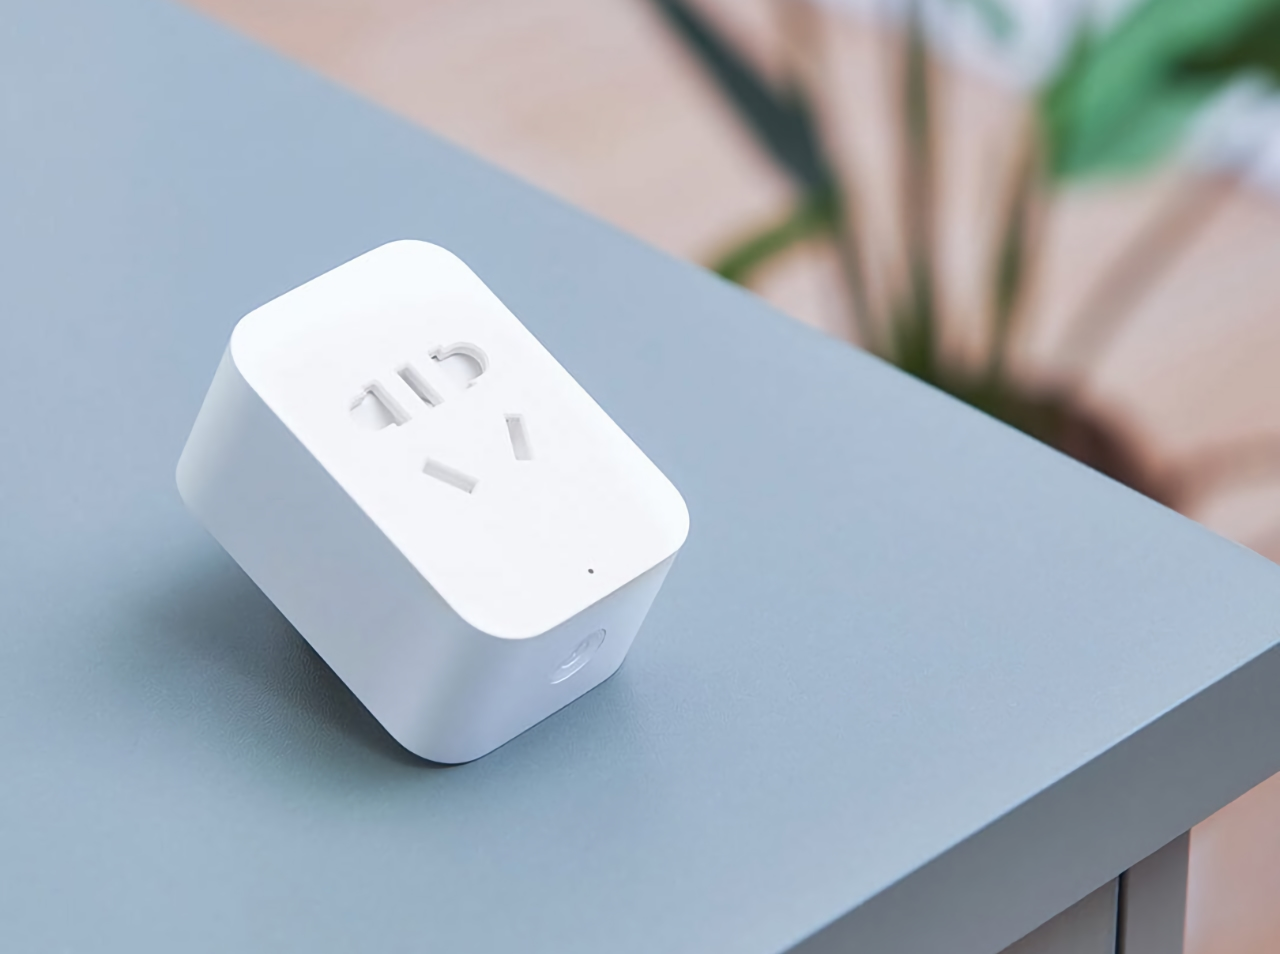 Xiaomi представила умную розетку MiJia Smart Socket 2 Bluetooth Gateway Edition за $7